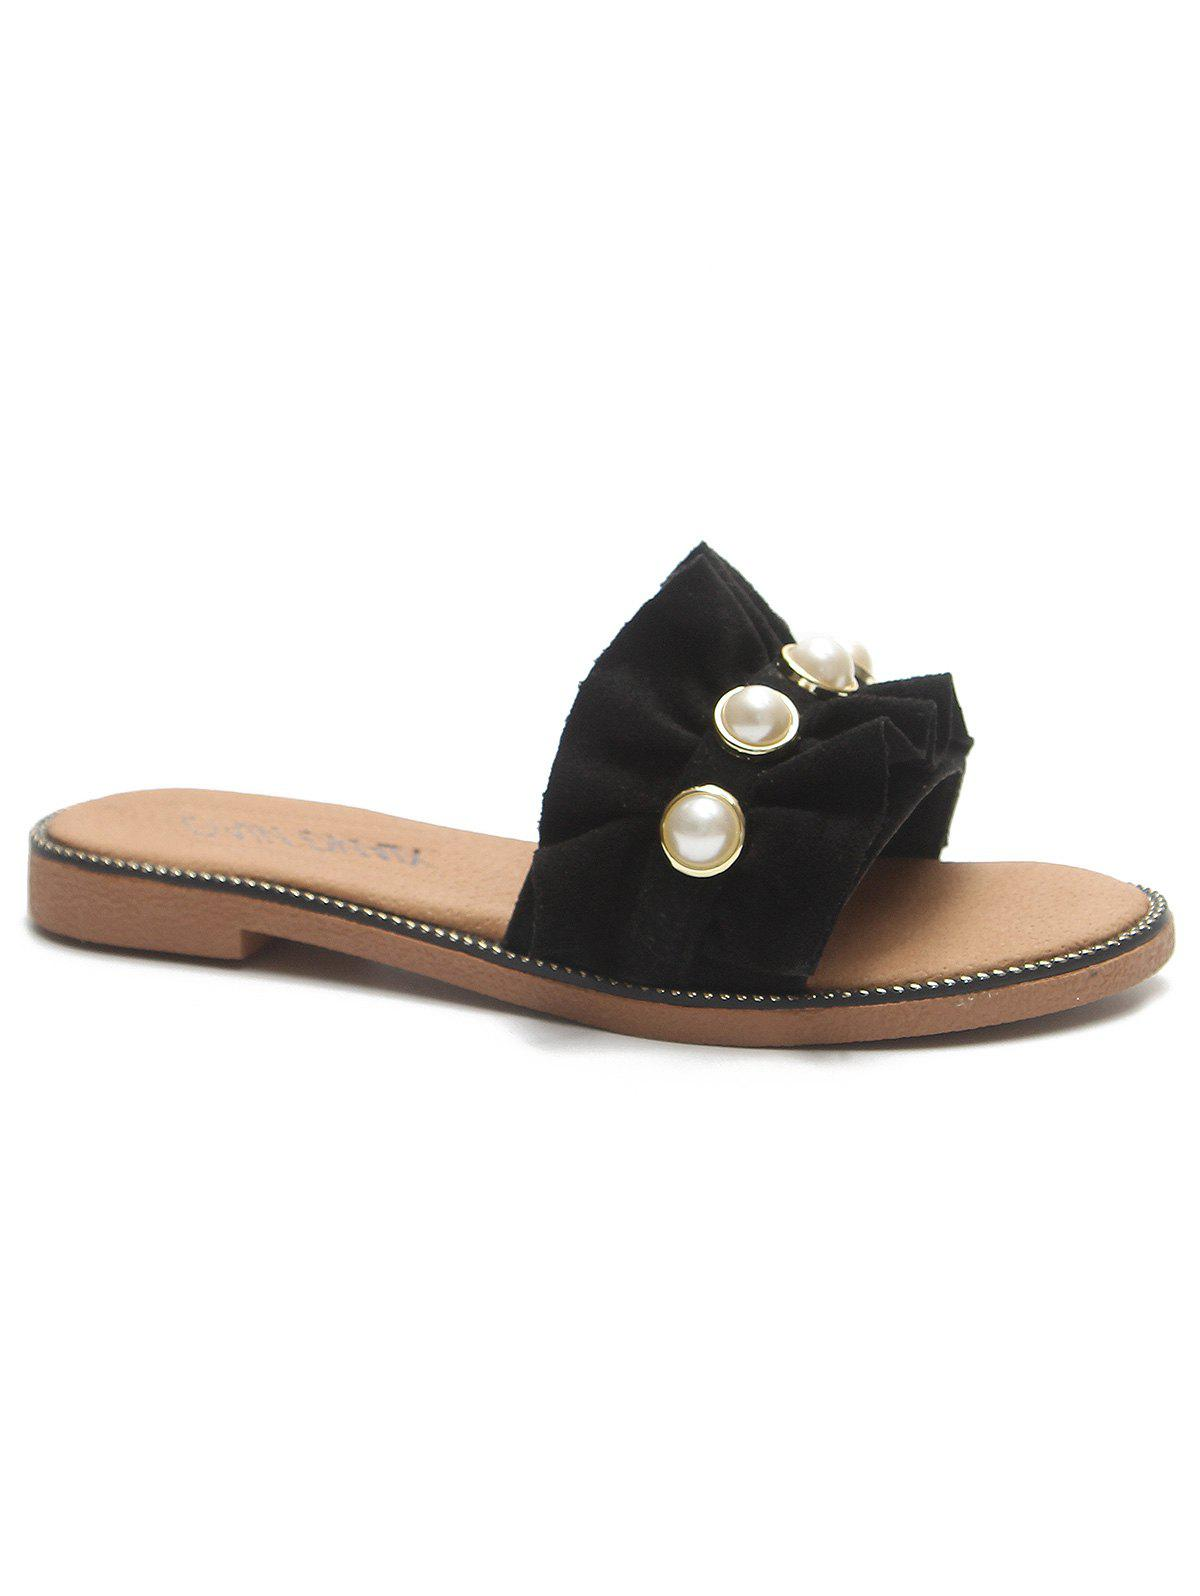 Suede Ruffled Flat Heel Faux Pearl Sandals - BLACK 39